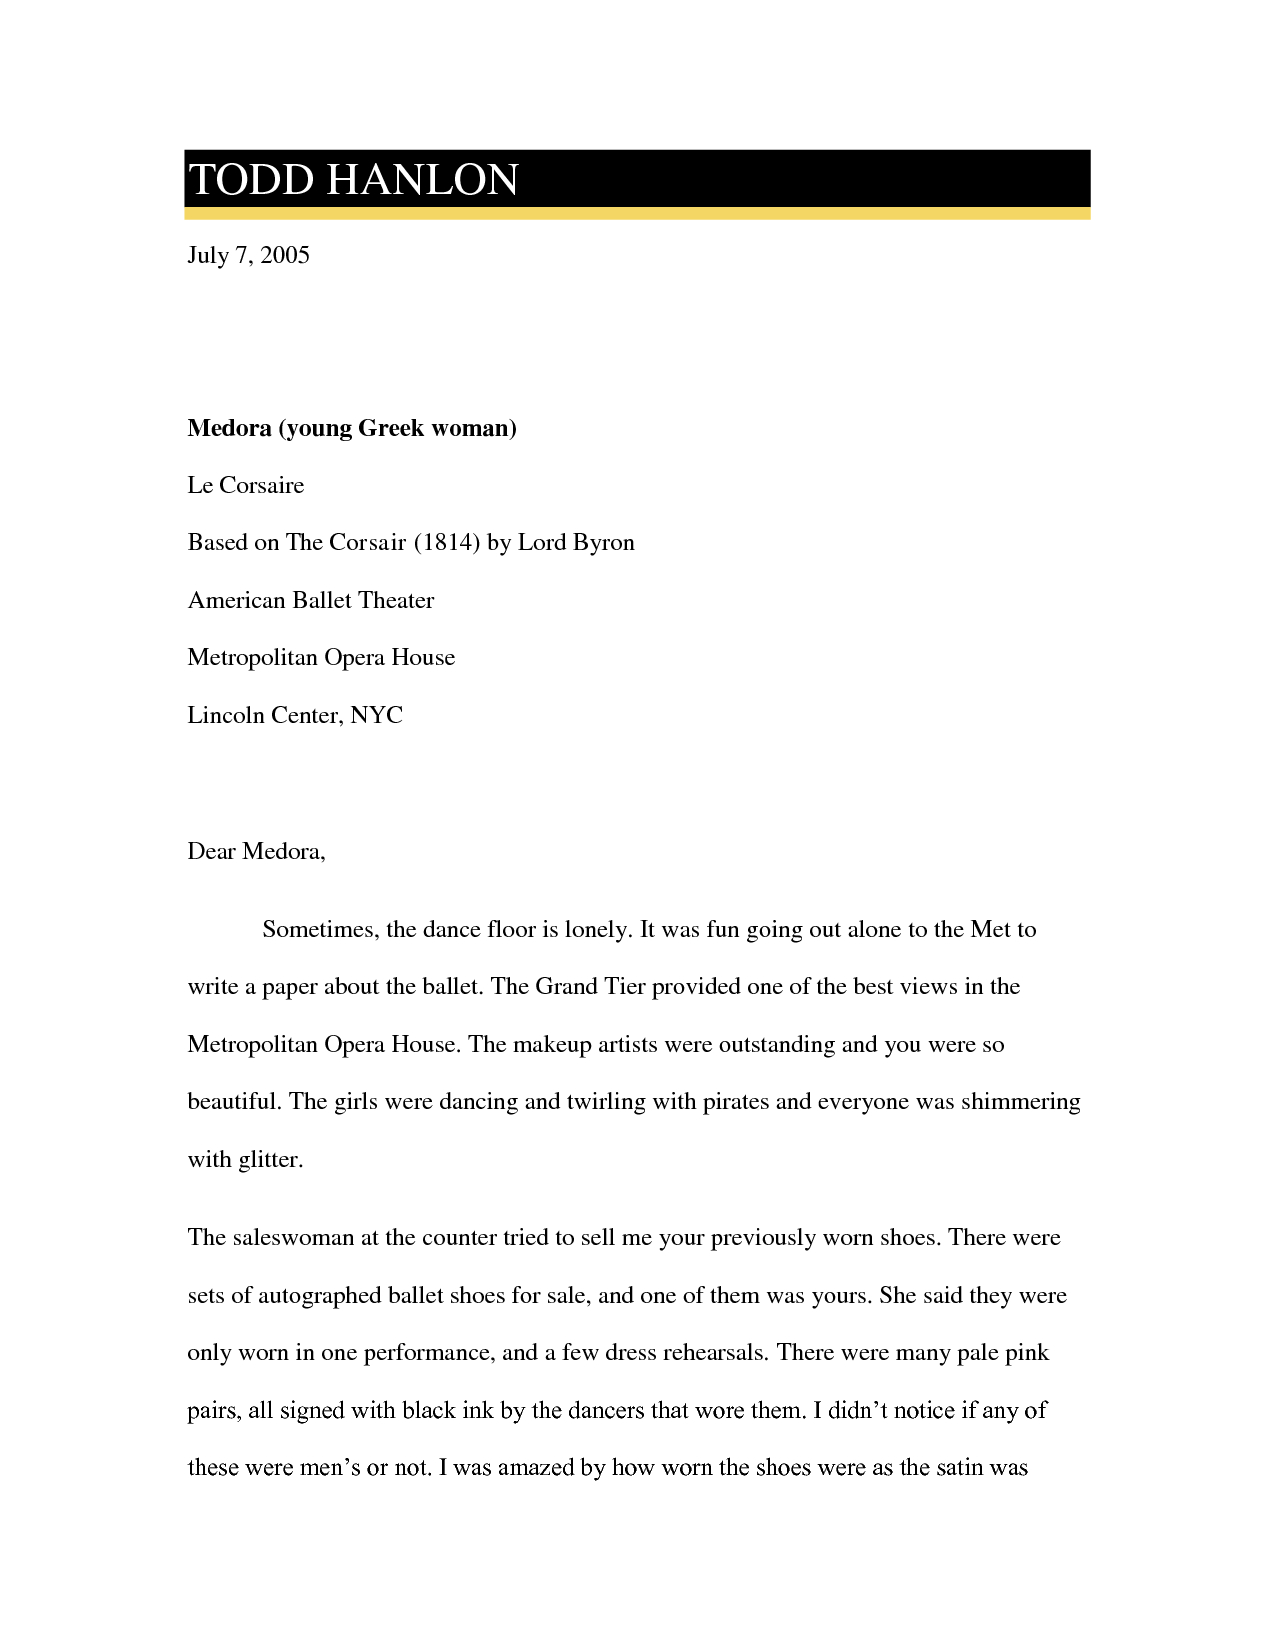 Cover Letter Template Mac - Cover Letter for Makeup Artist Acurnamedia